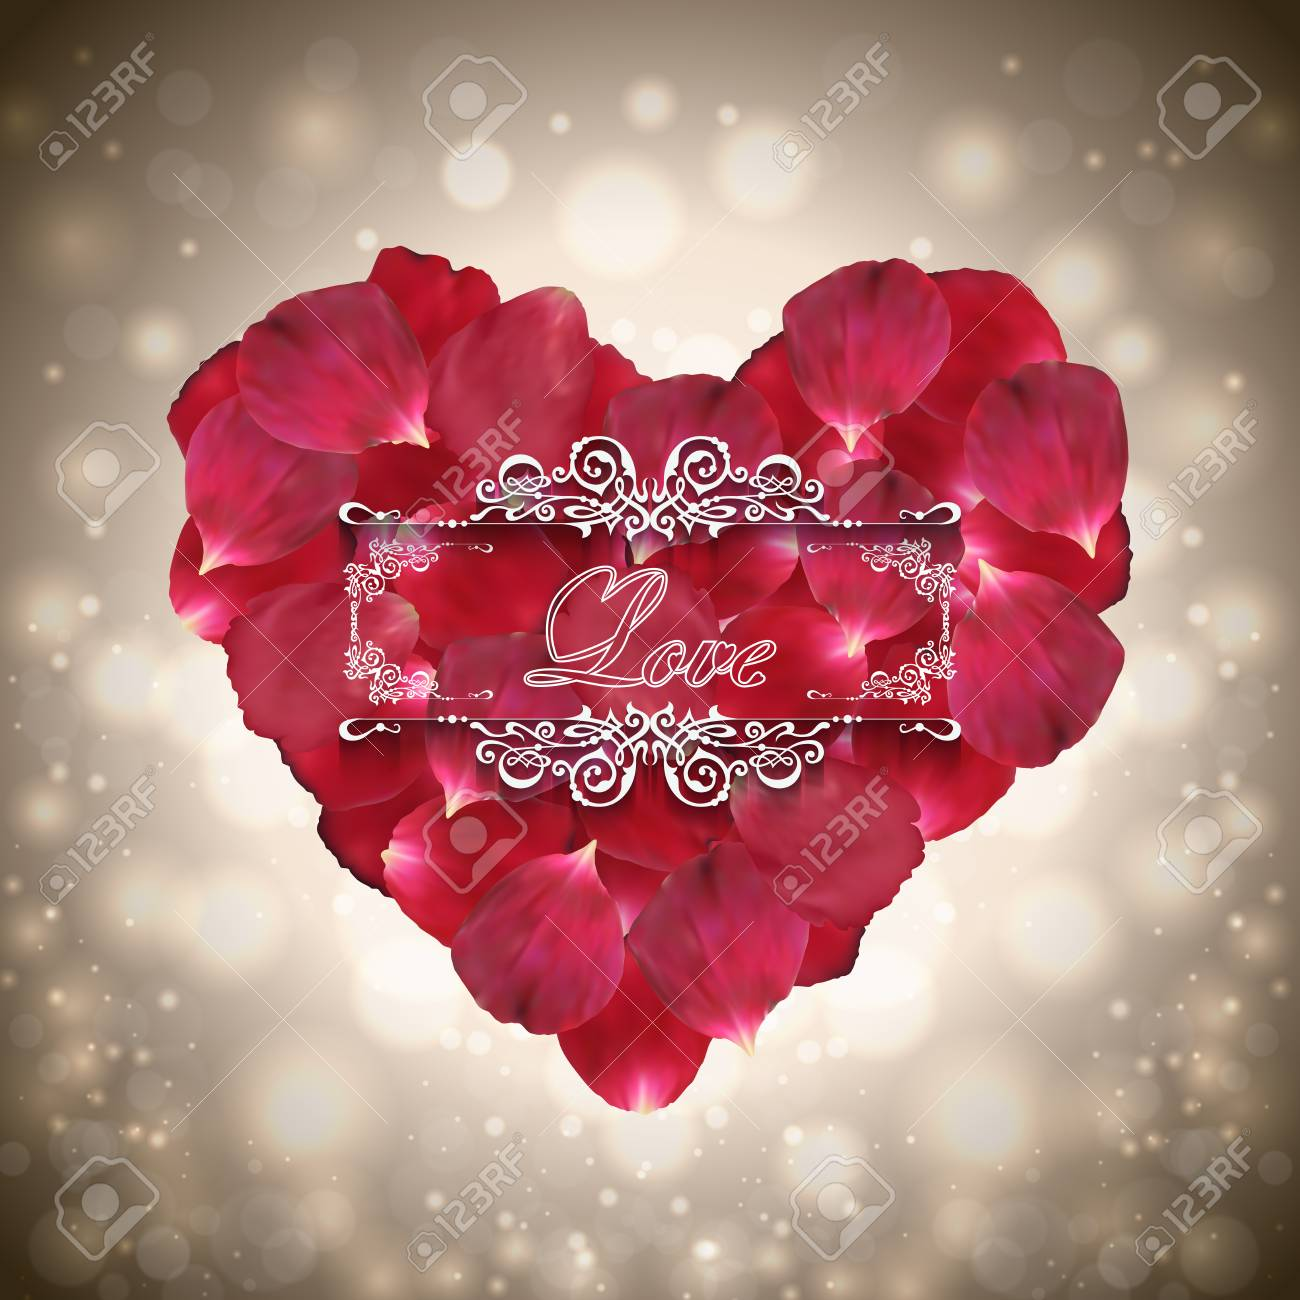 Illustration Of Valentines Day Card Template With Heart Made ...